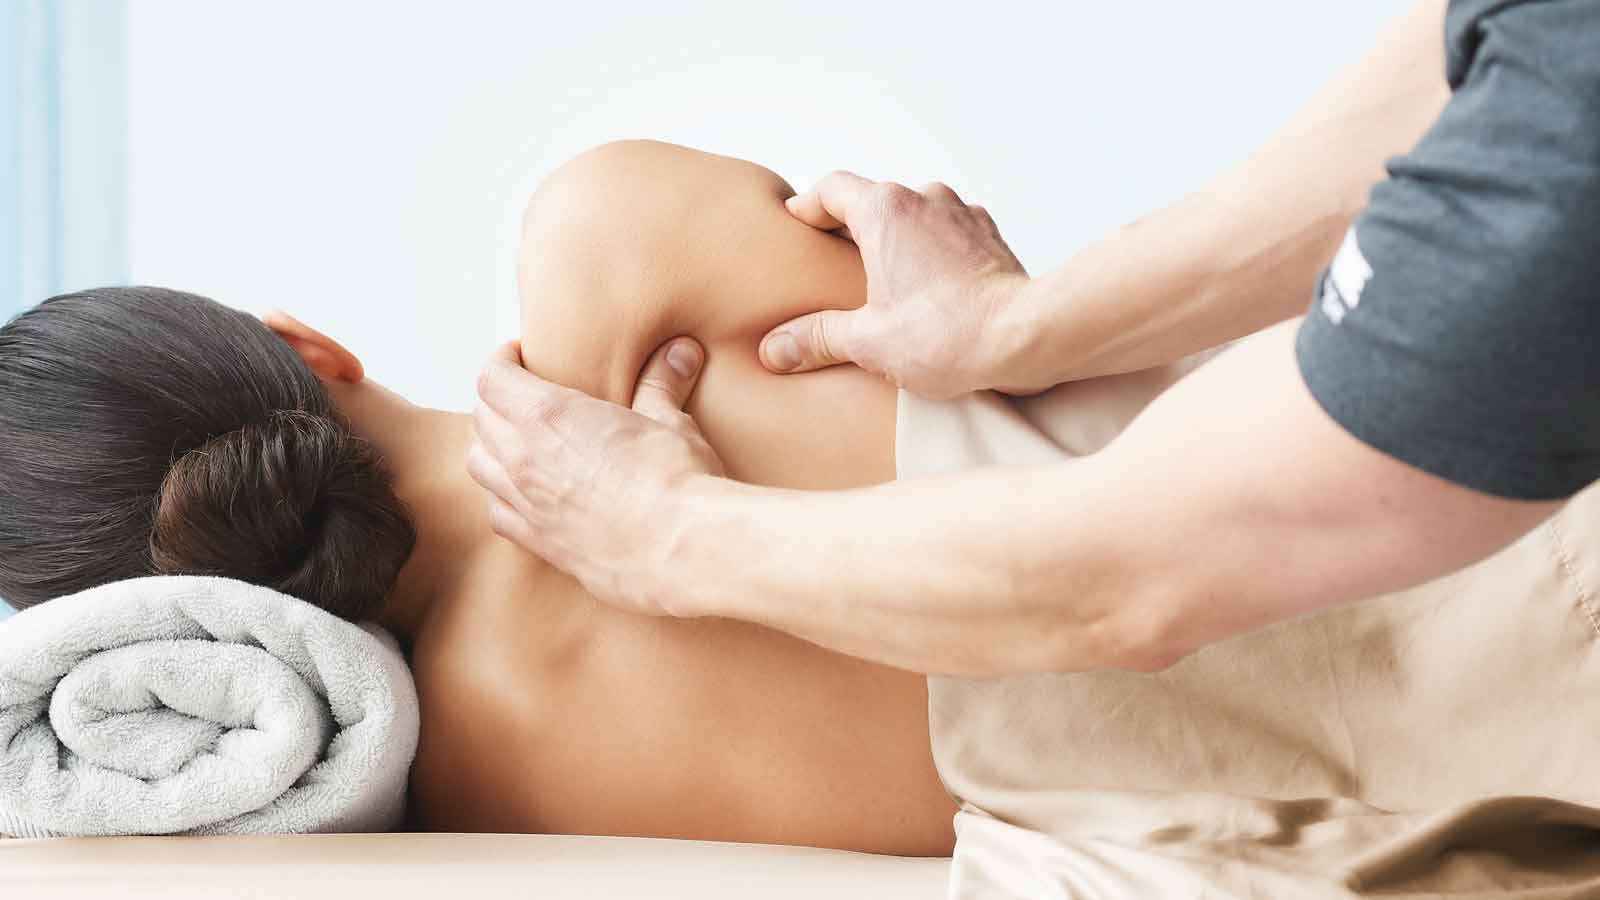 A massues pressing into the shoulders of a women laying on her side on a massage table